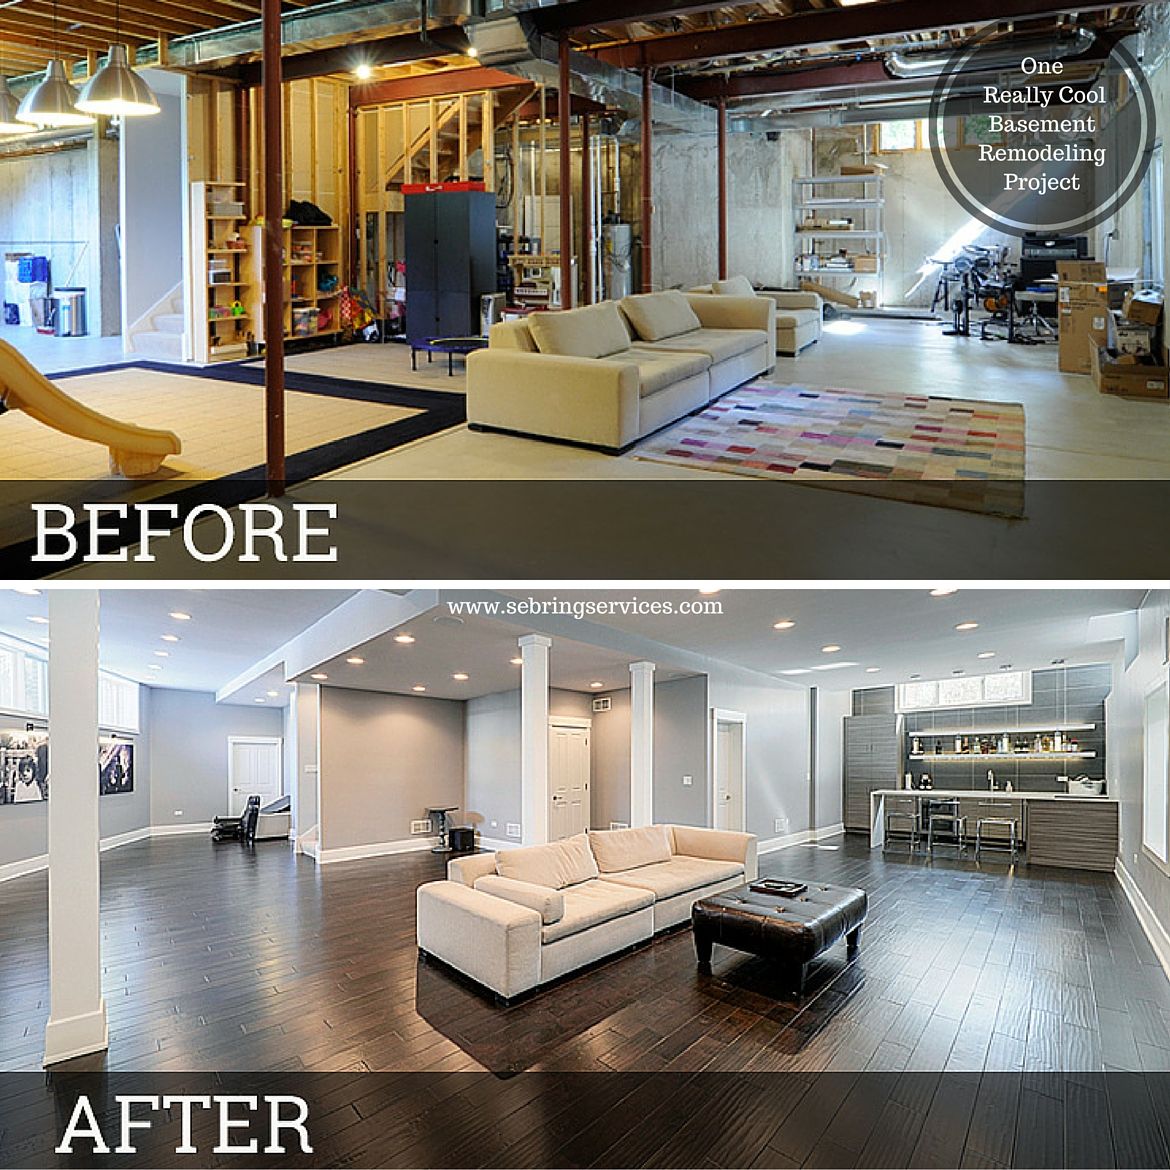 Remodeled Basements Before And After Beauteous Before & After One Really Cool Basement Remodeling Project  Home . Design Decoration